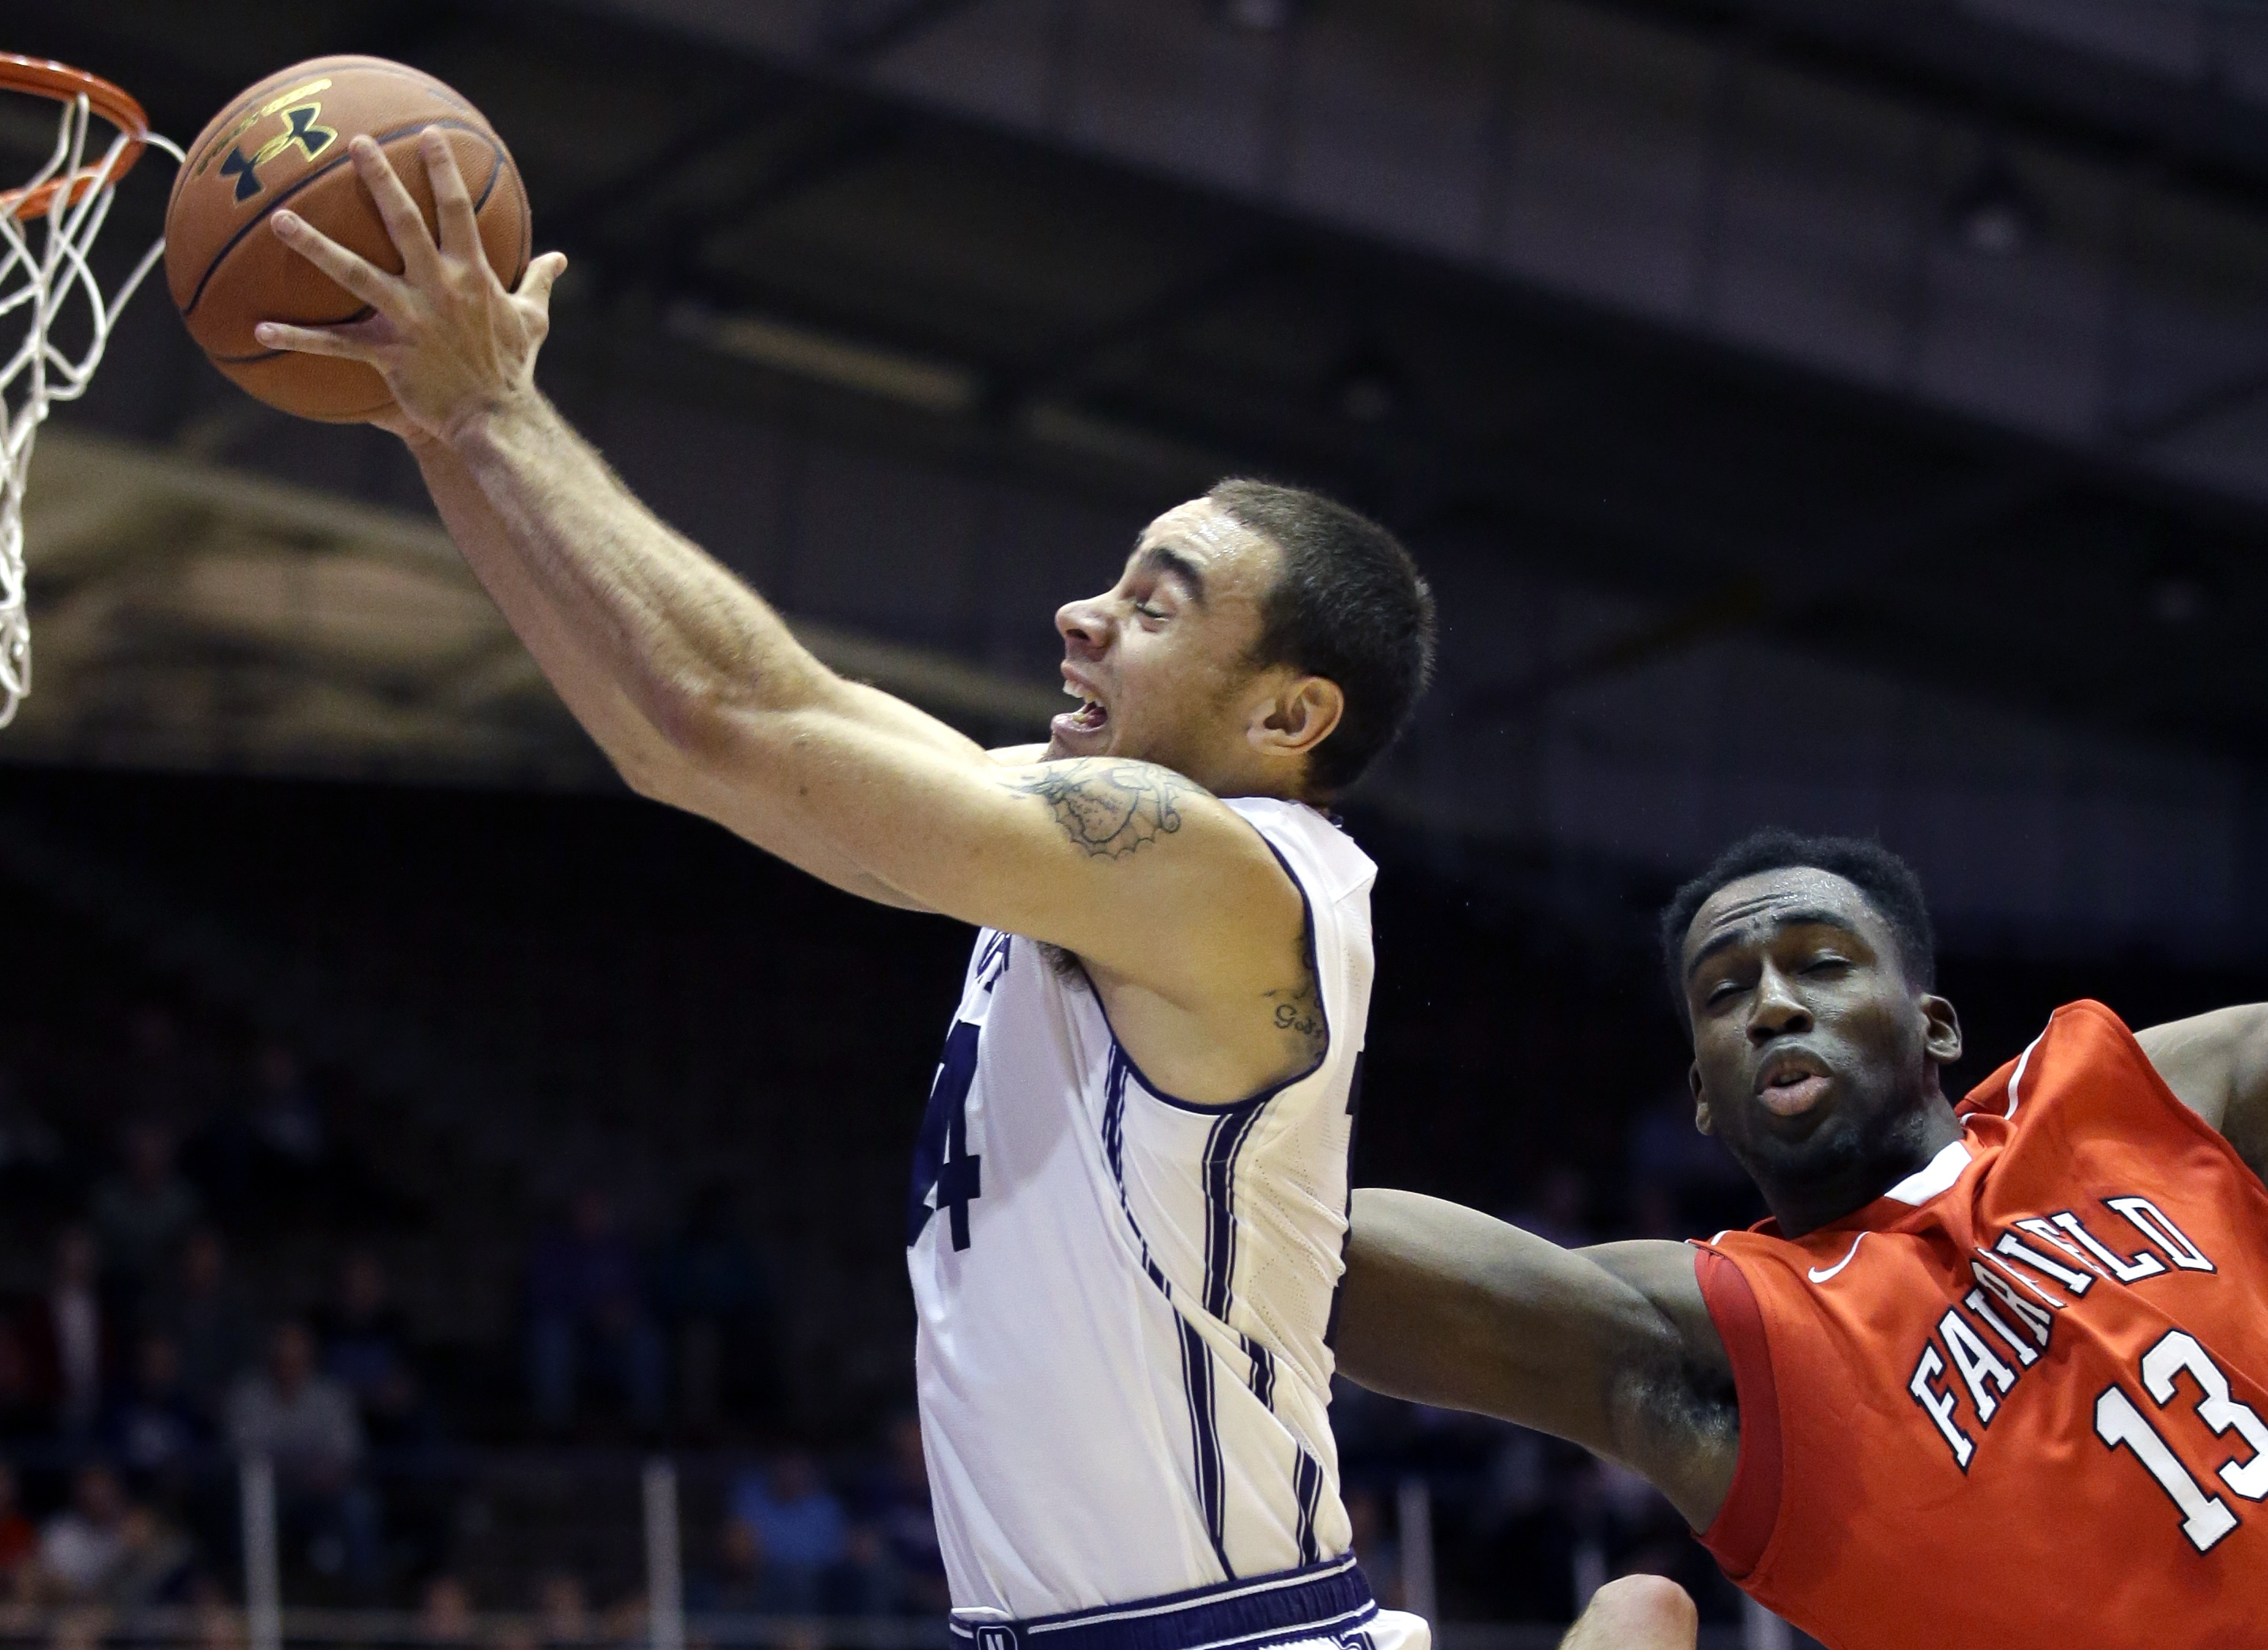 Northwestern guard Tre Demps, left, grabs a rebound against Fairfield forward Jonathan Kasibabu during the first half of an NCAA college basketball game on Wednesday, Nov. 18, 2015, in Evanston, Ill. (AP Photo/Nam Y. Huh)